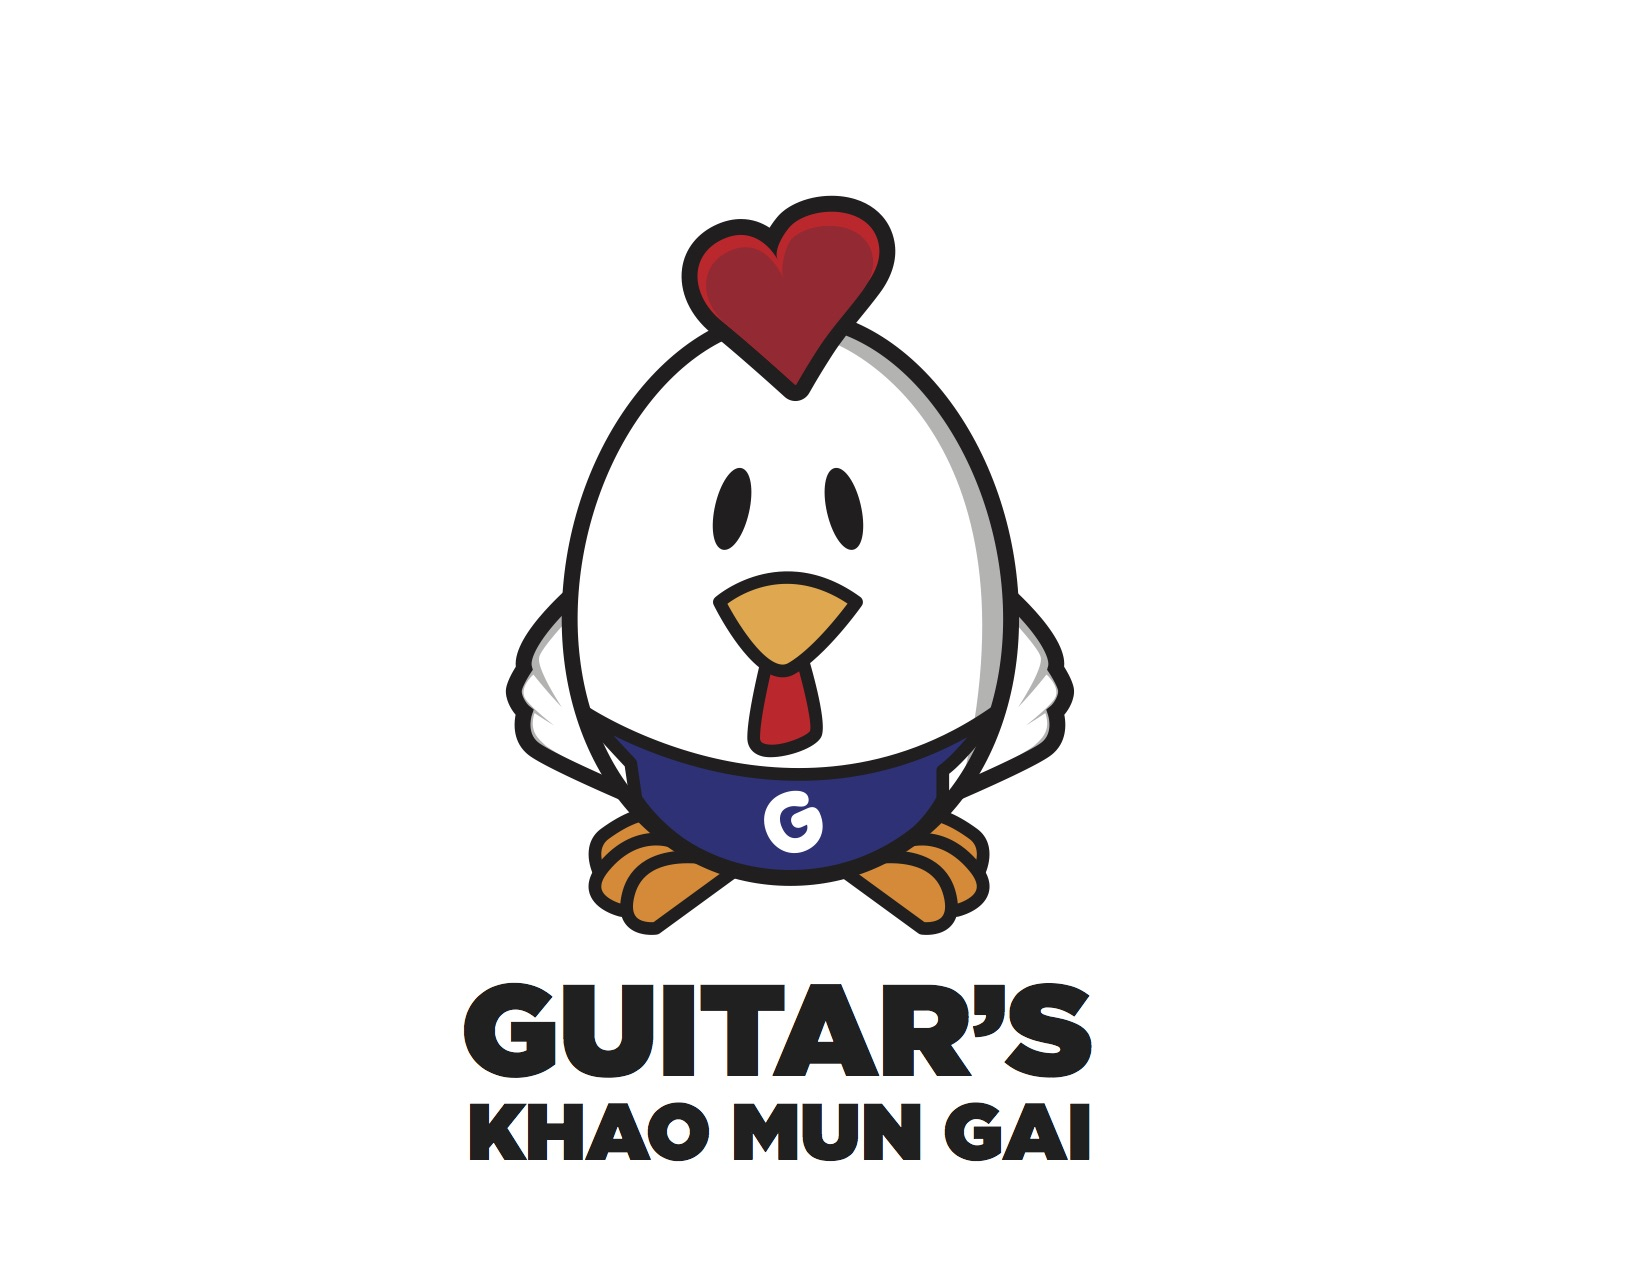 Guitars Logo1.jpg